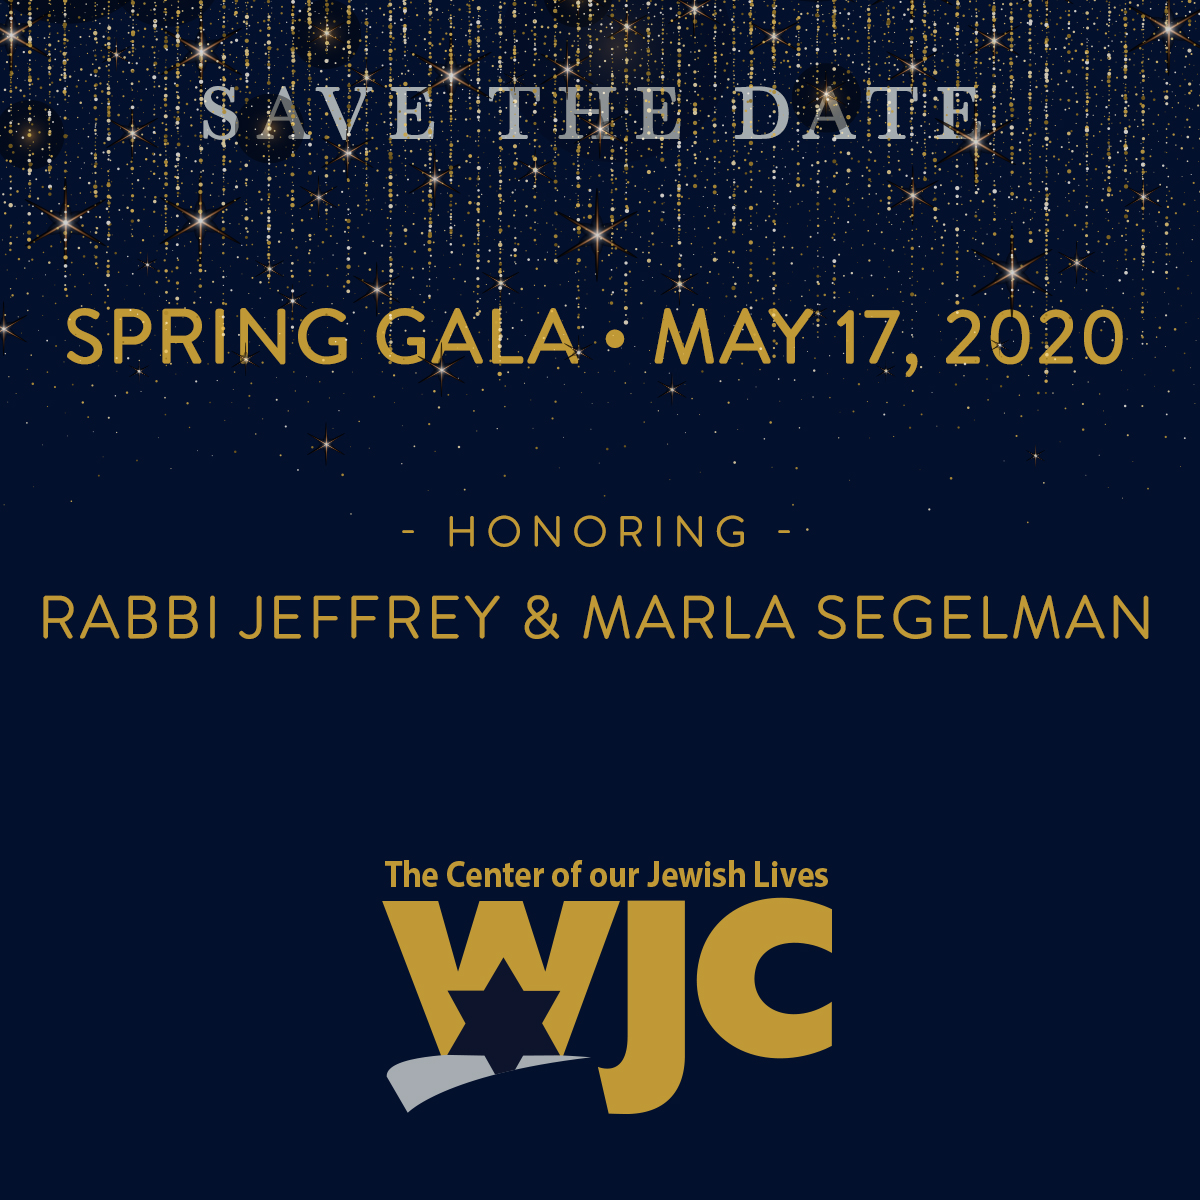 Update on the Spring Gala